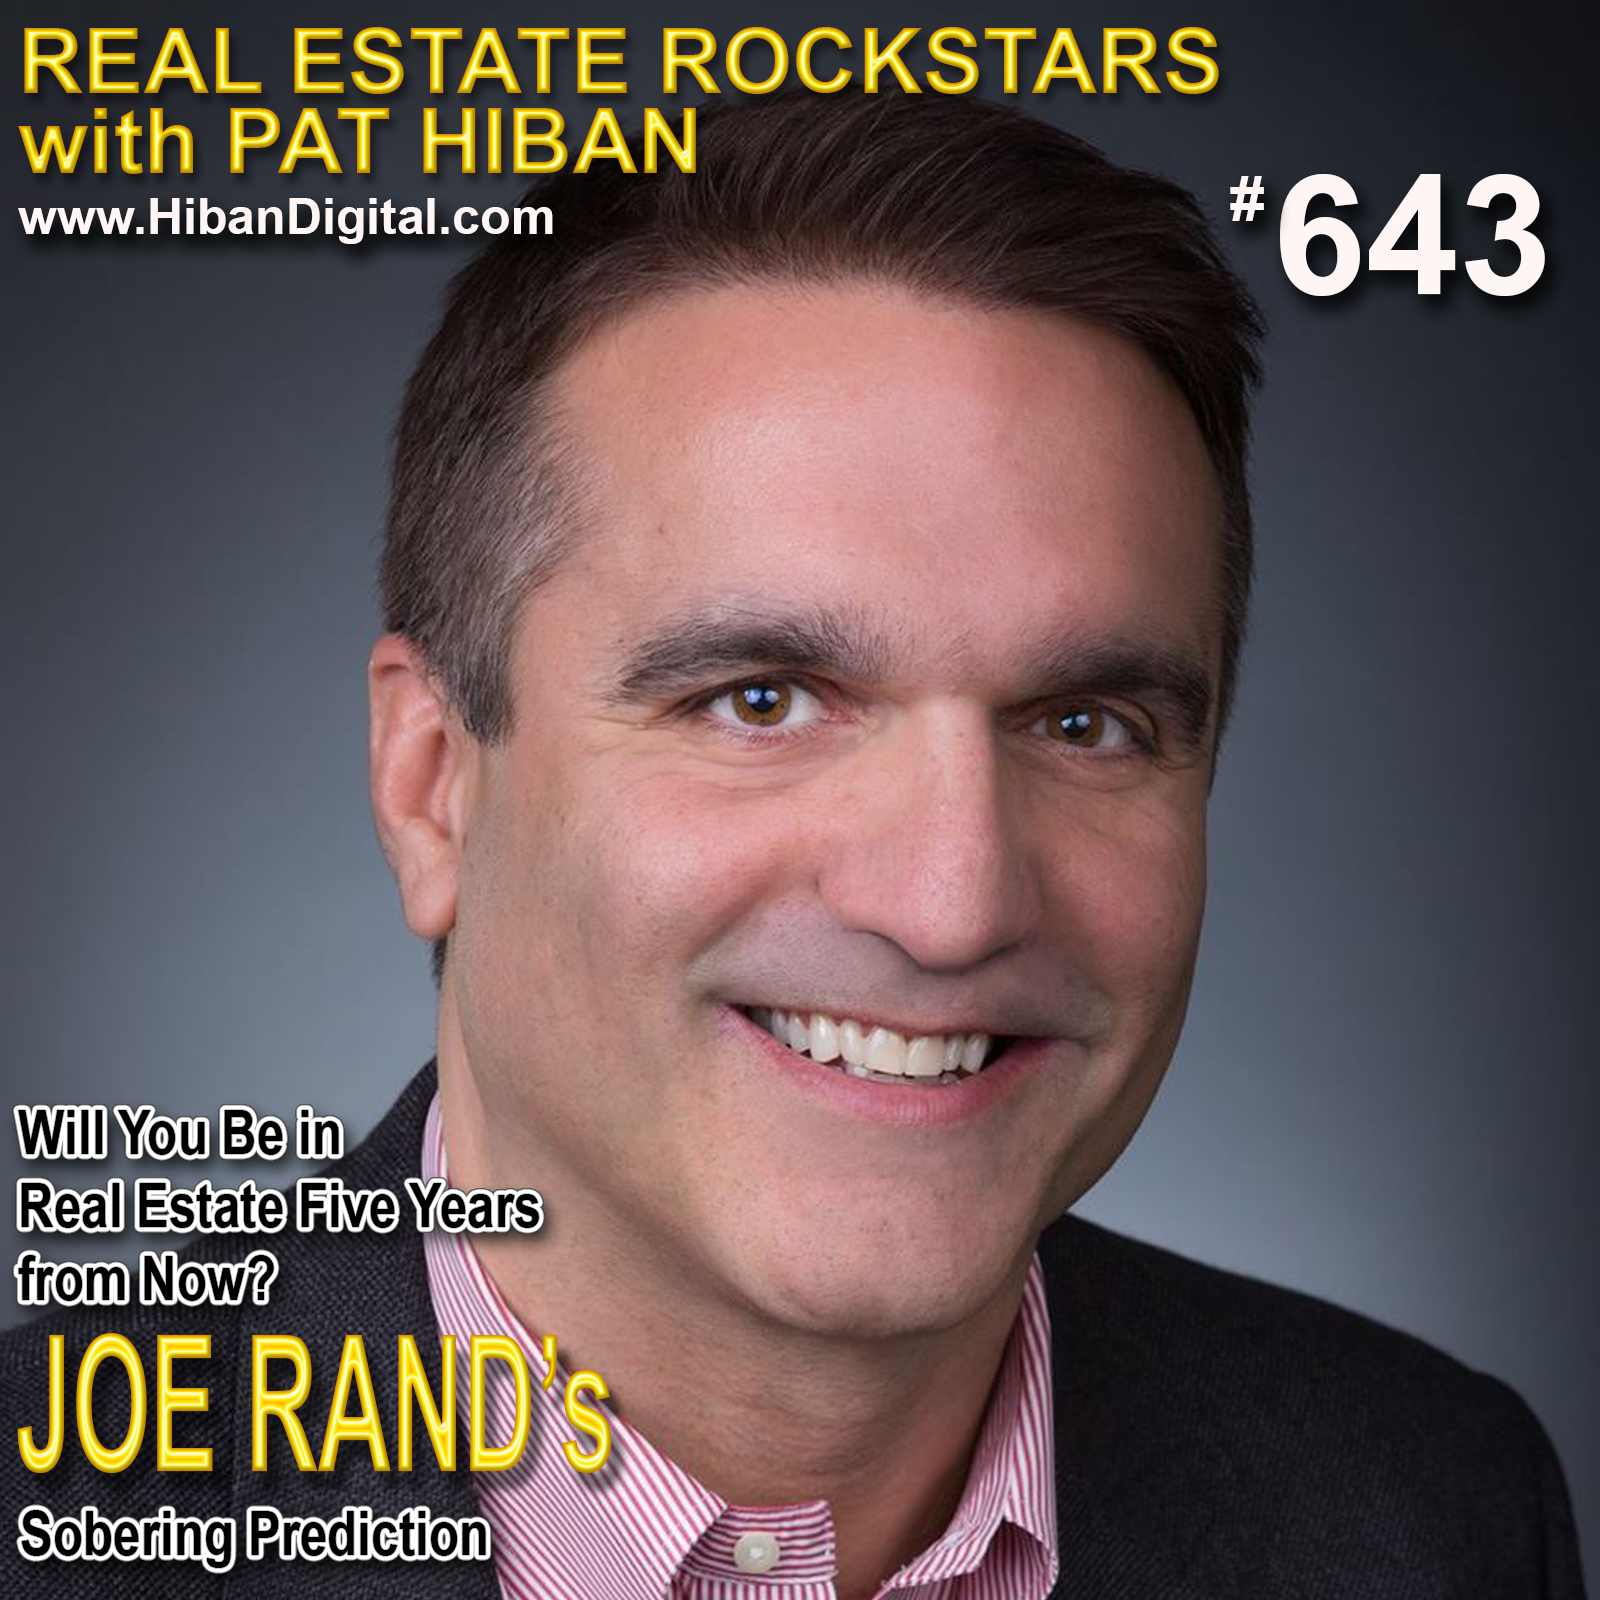 Podcast: Will You Be in Real Estate Five Years from Now?